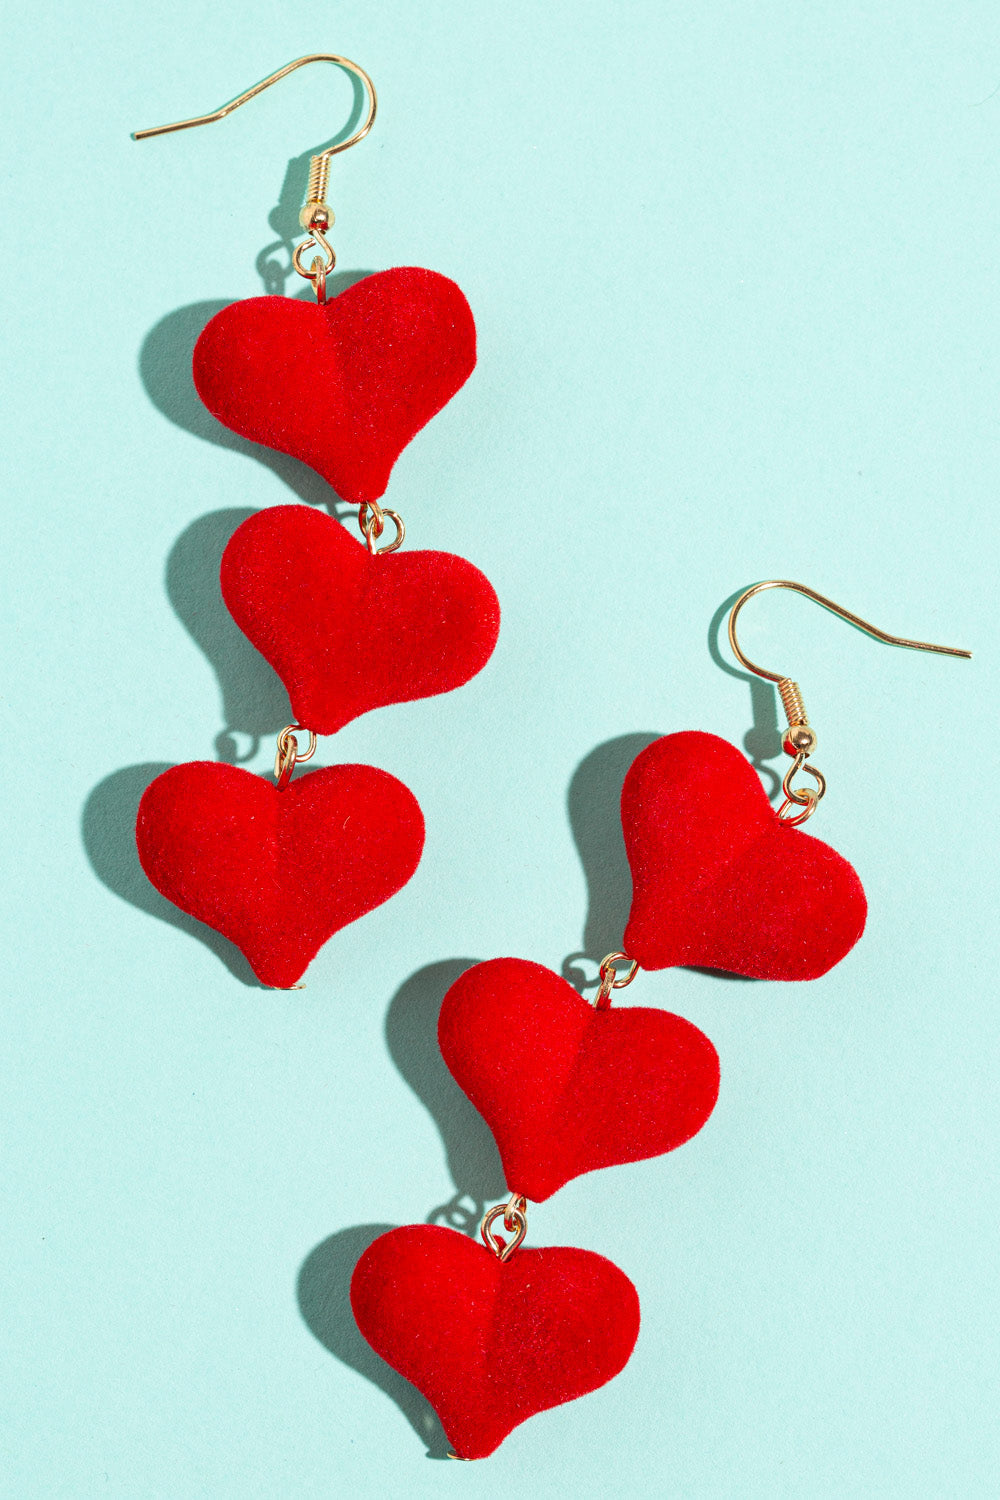 Type 1 Linked'n Love Earrings